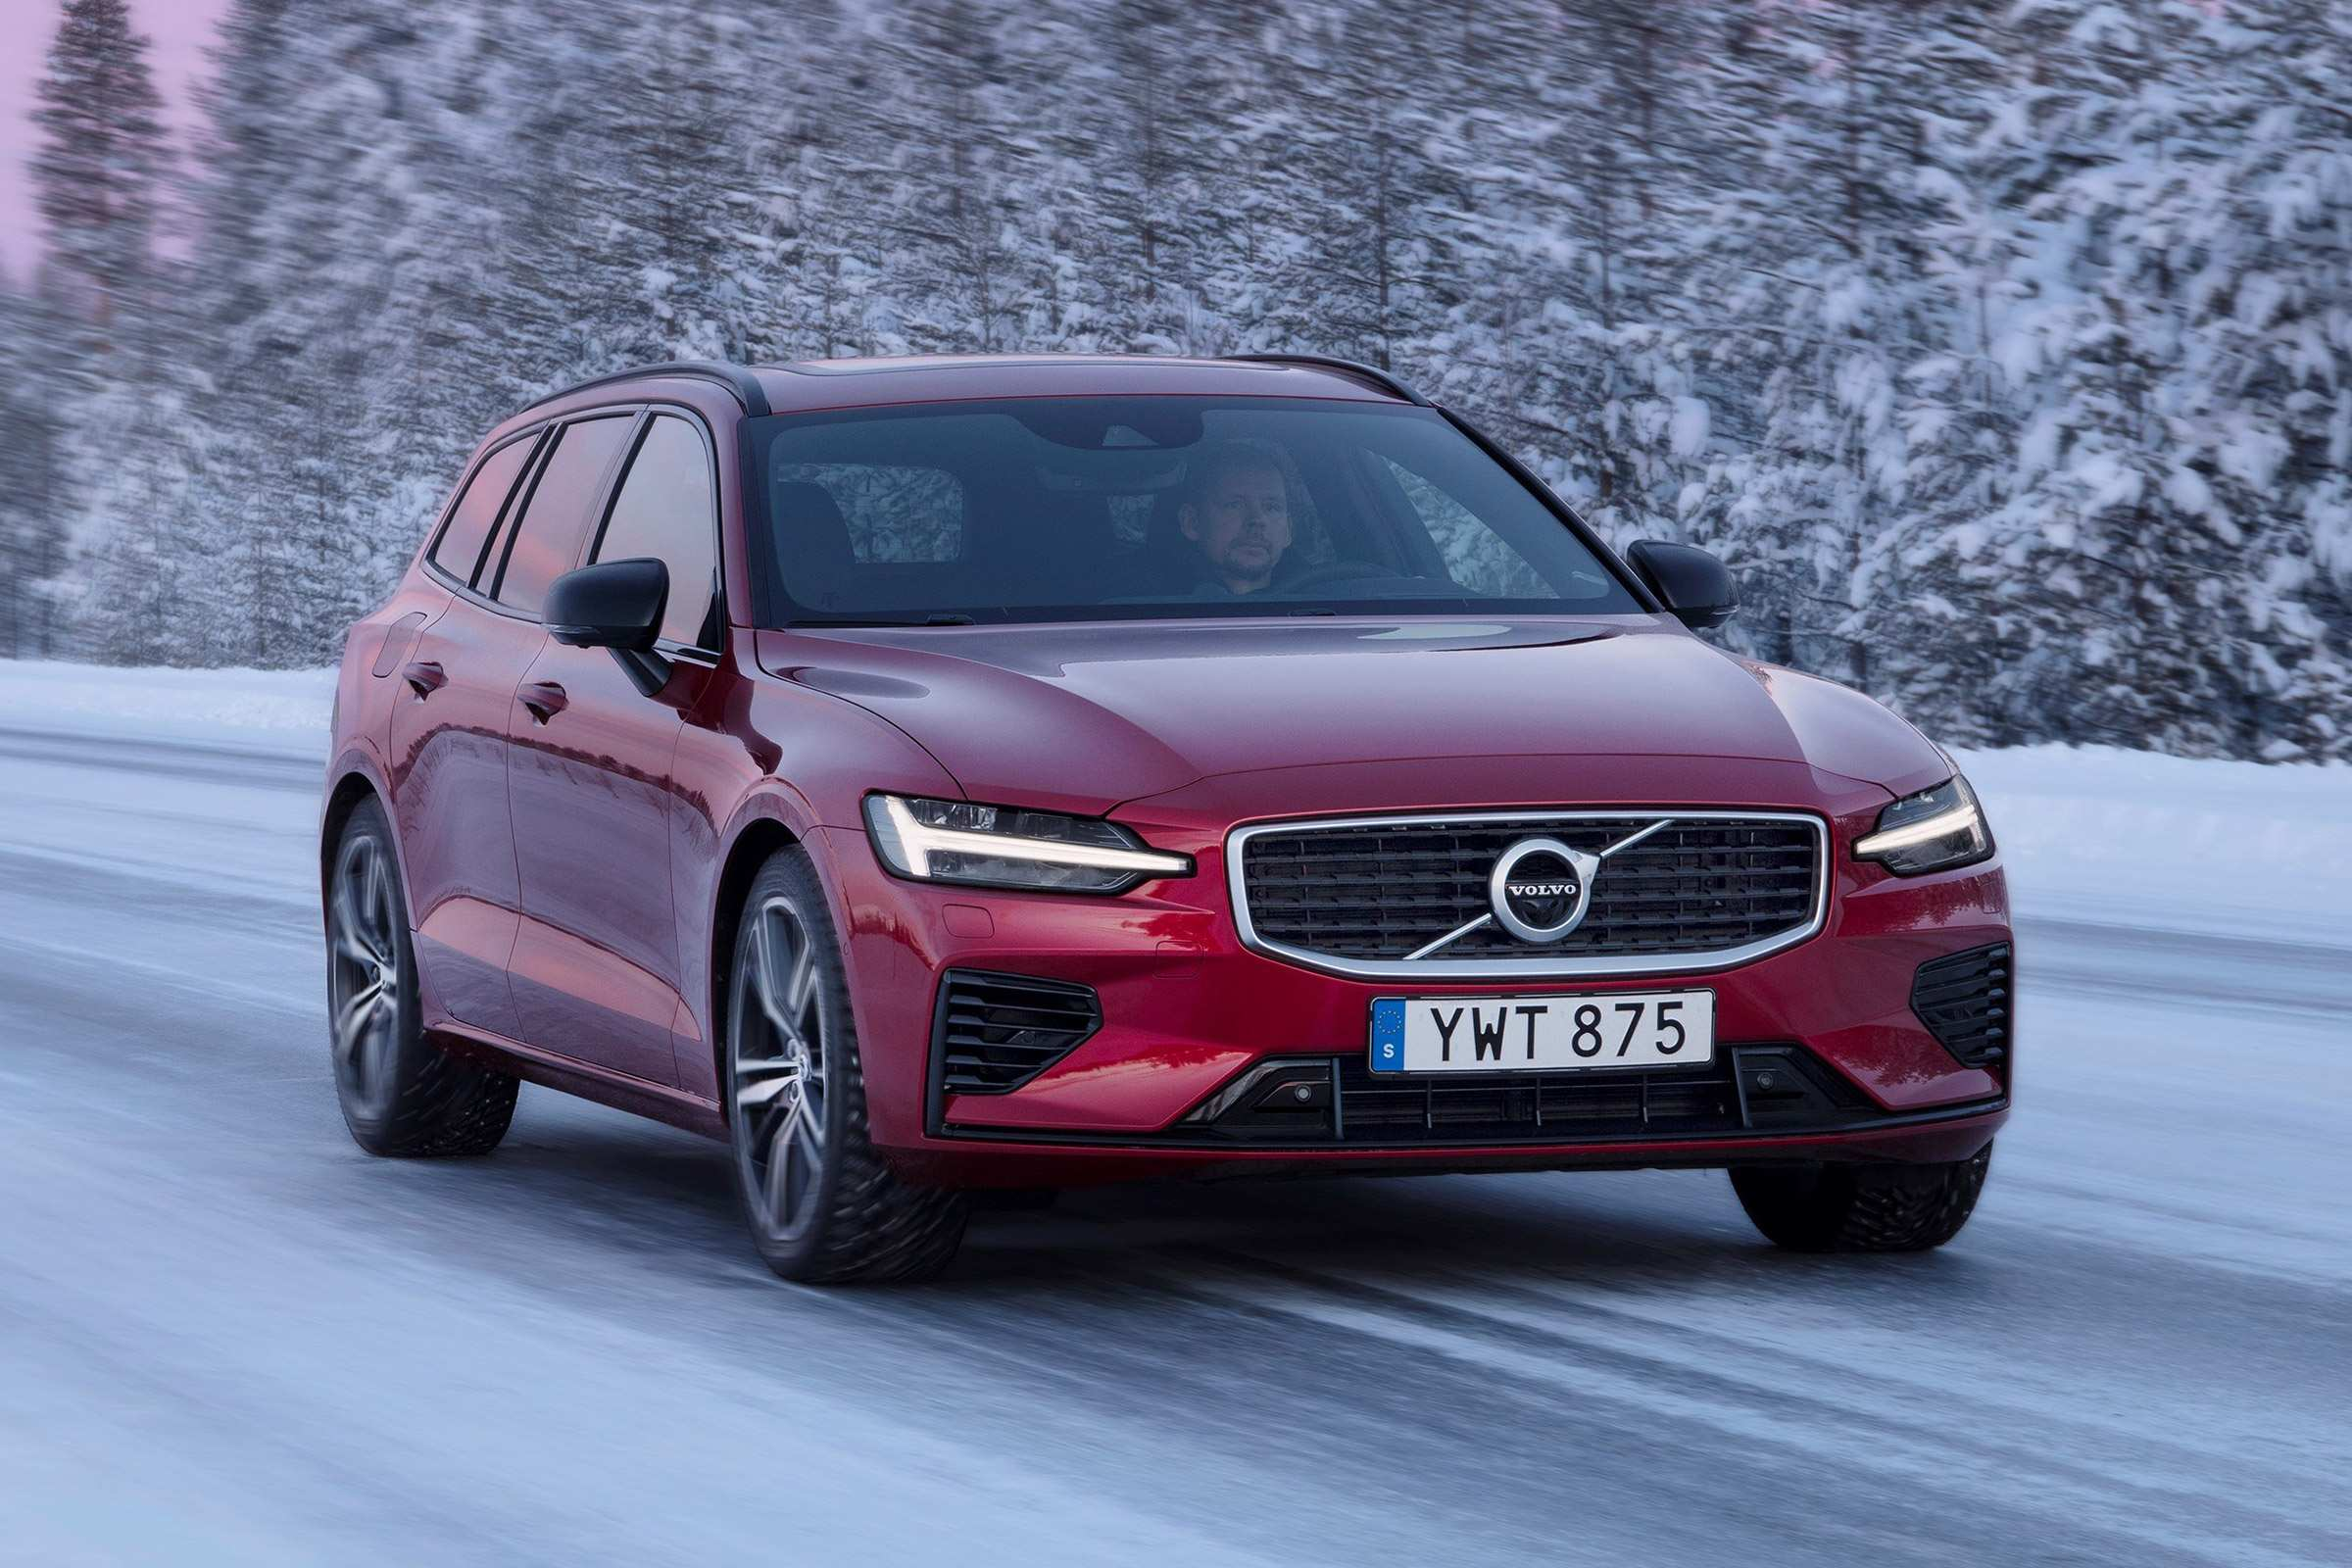 91 A Volvo S60 2019 Hybrid Spesification